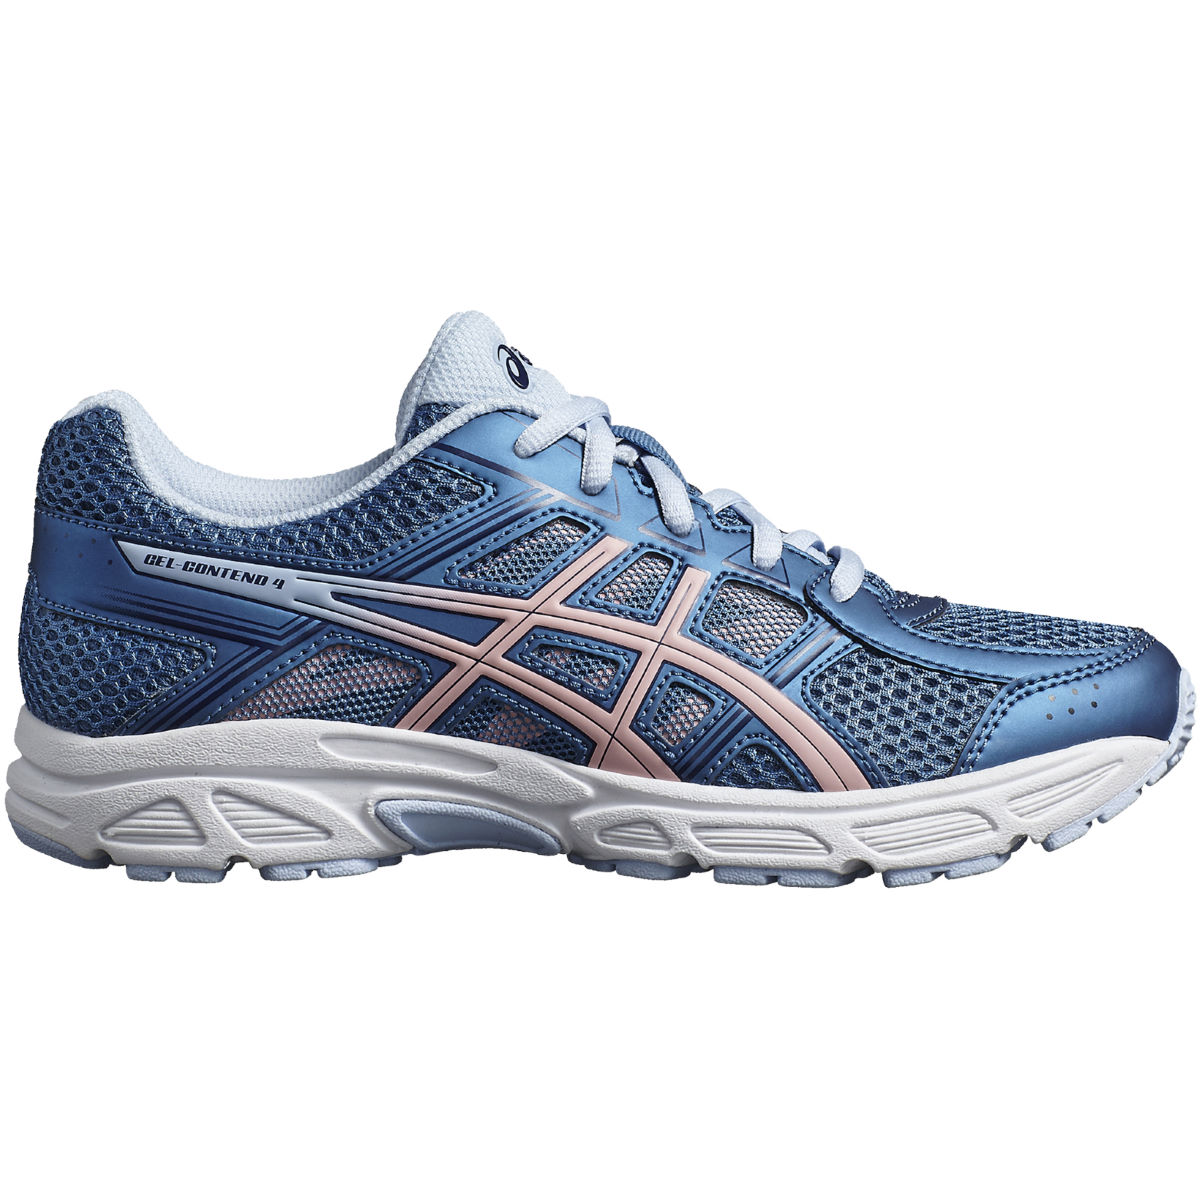 Chaussures Enfant Asics Gel-Contend 4 GS - UK 5 Azure/Frosted Rose